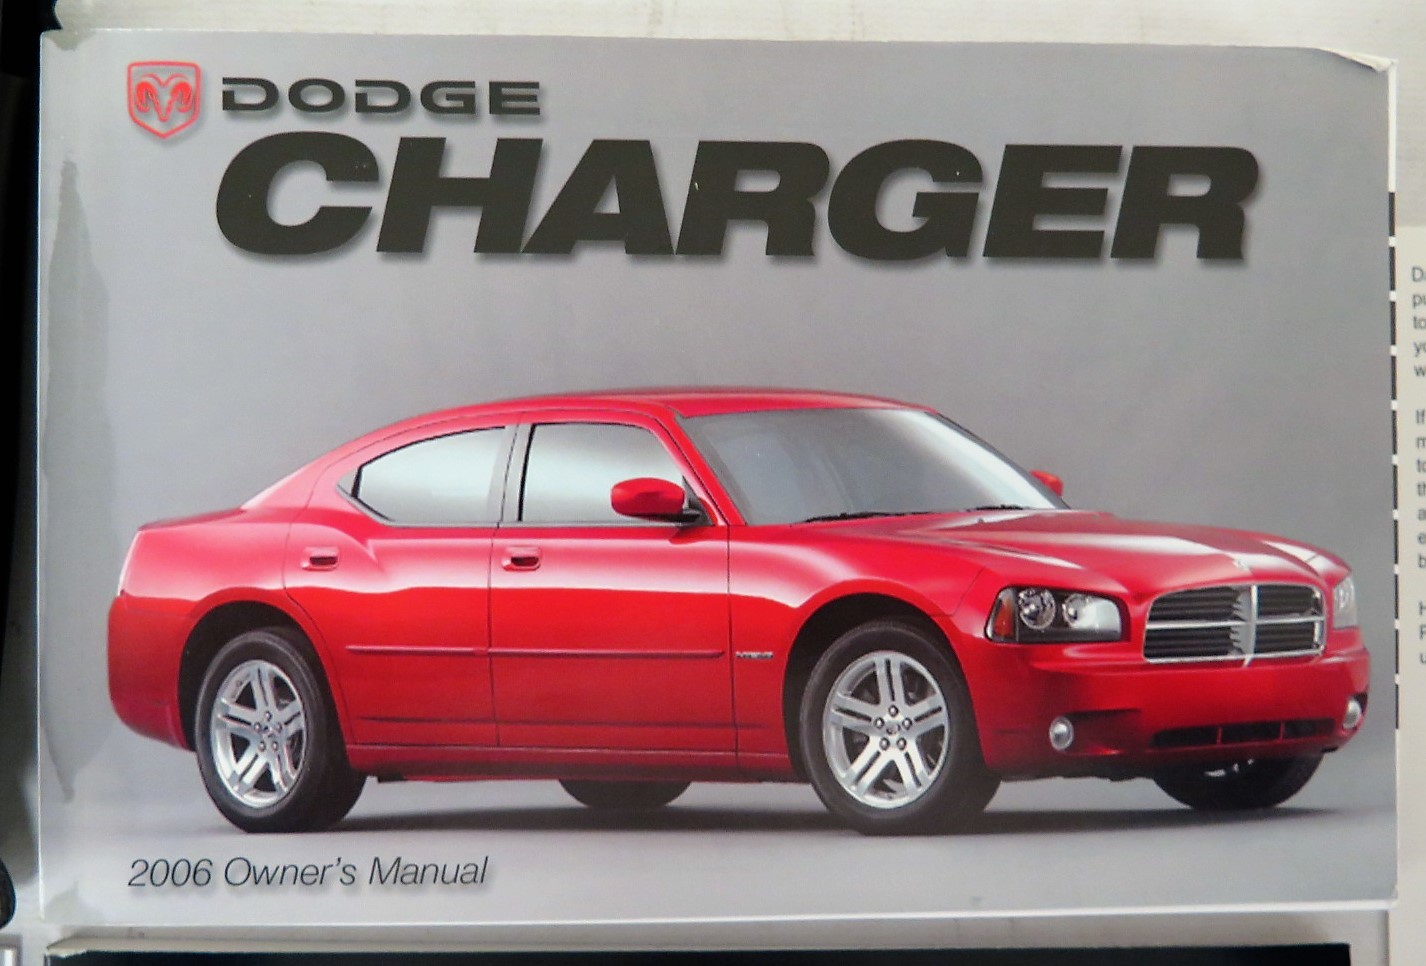 2006 dodge charger owners manual book bashful yak rh bashfulyak com 2006 dodge charger owners manual pdf Manual Transmission Fill